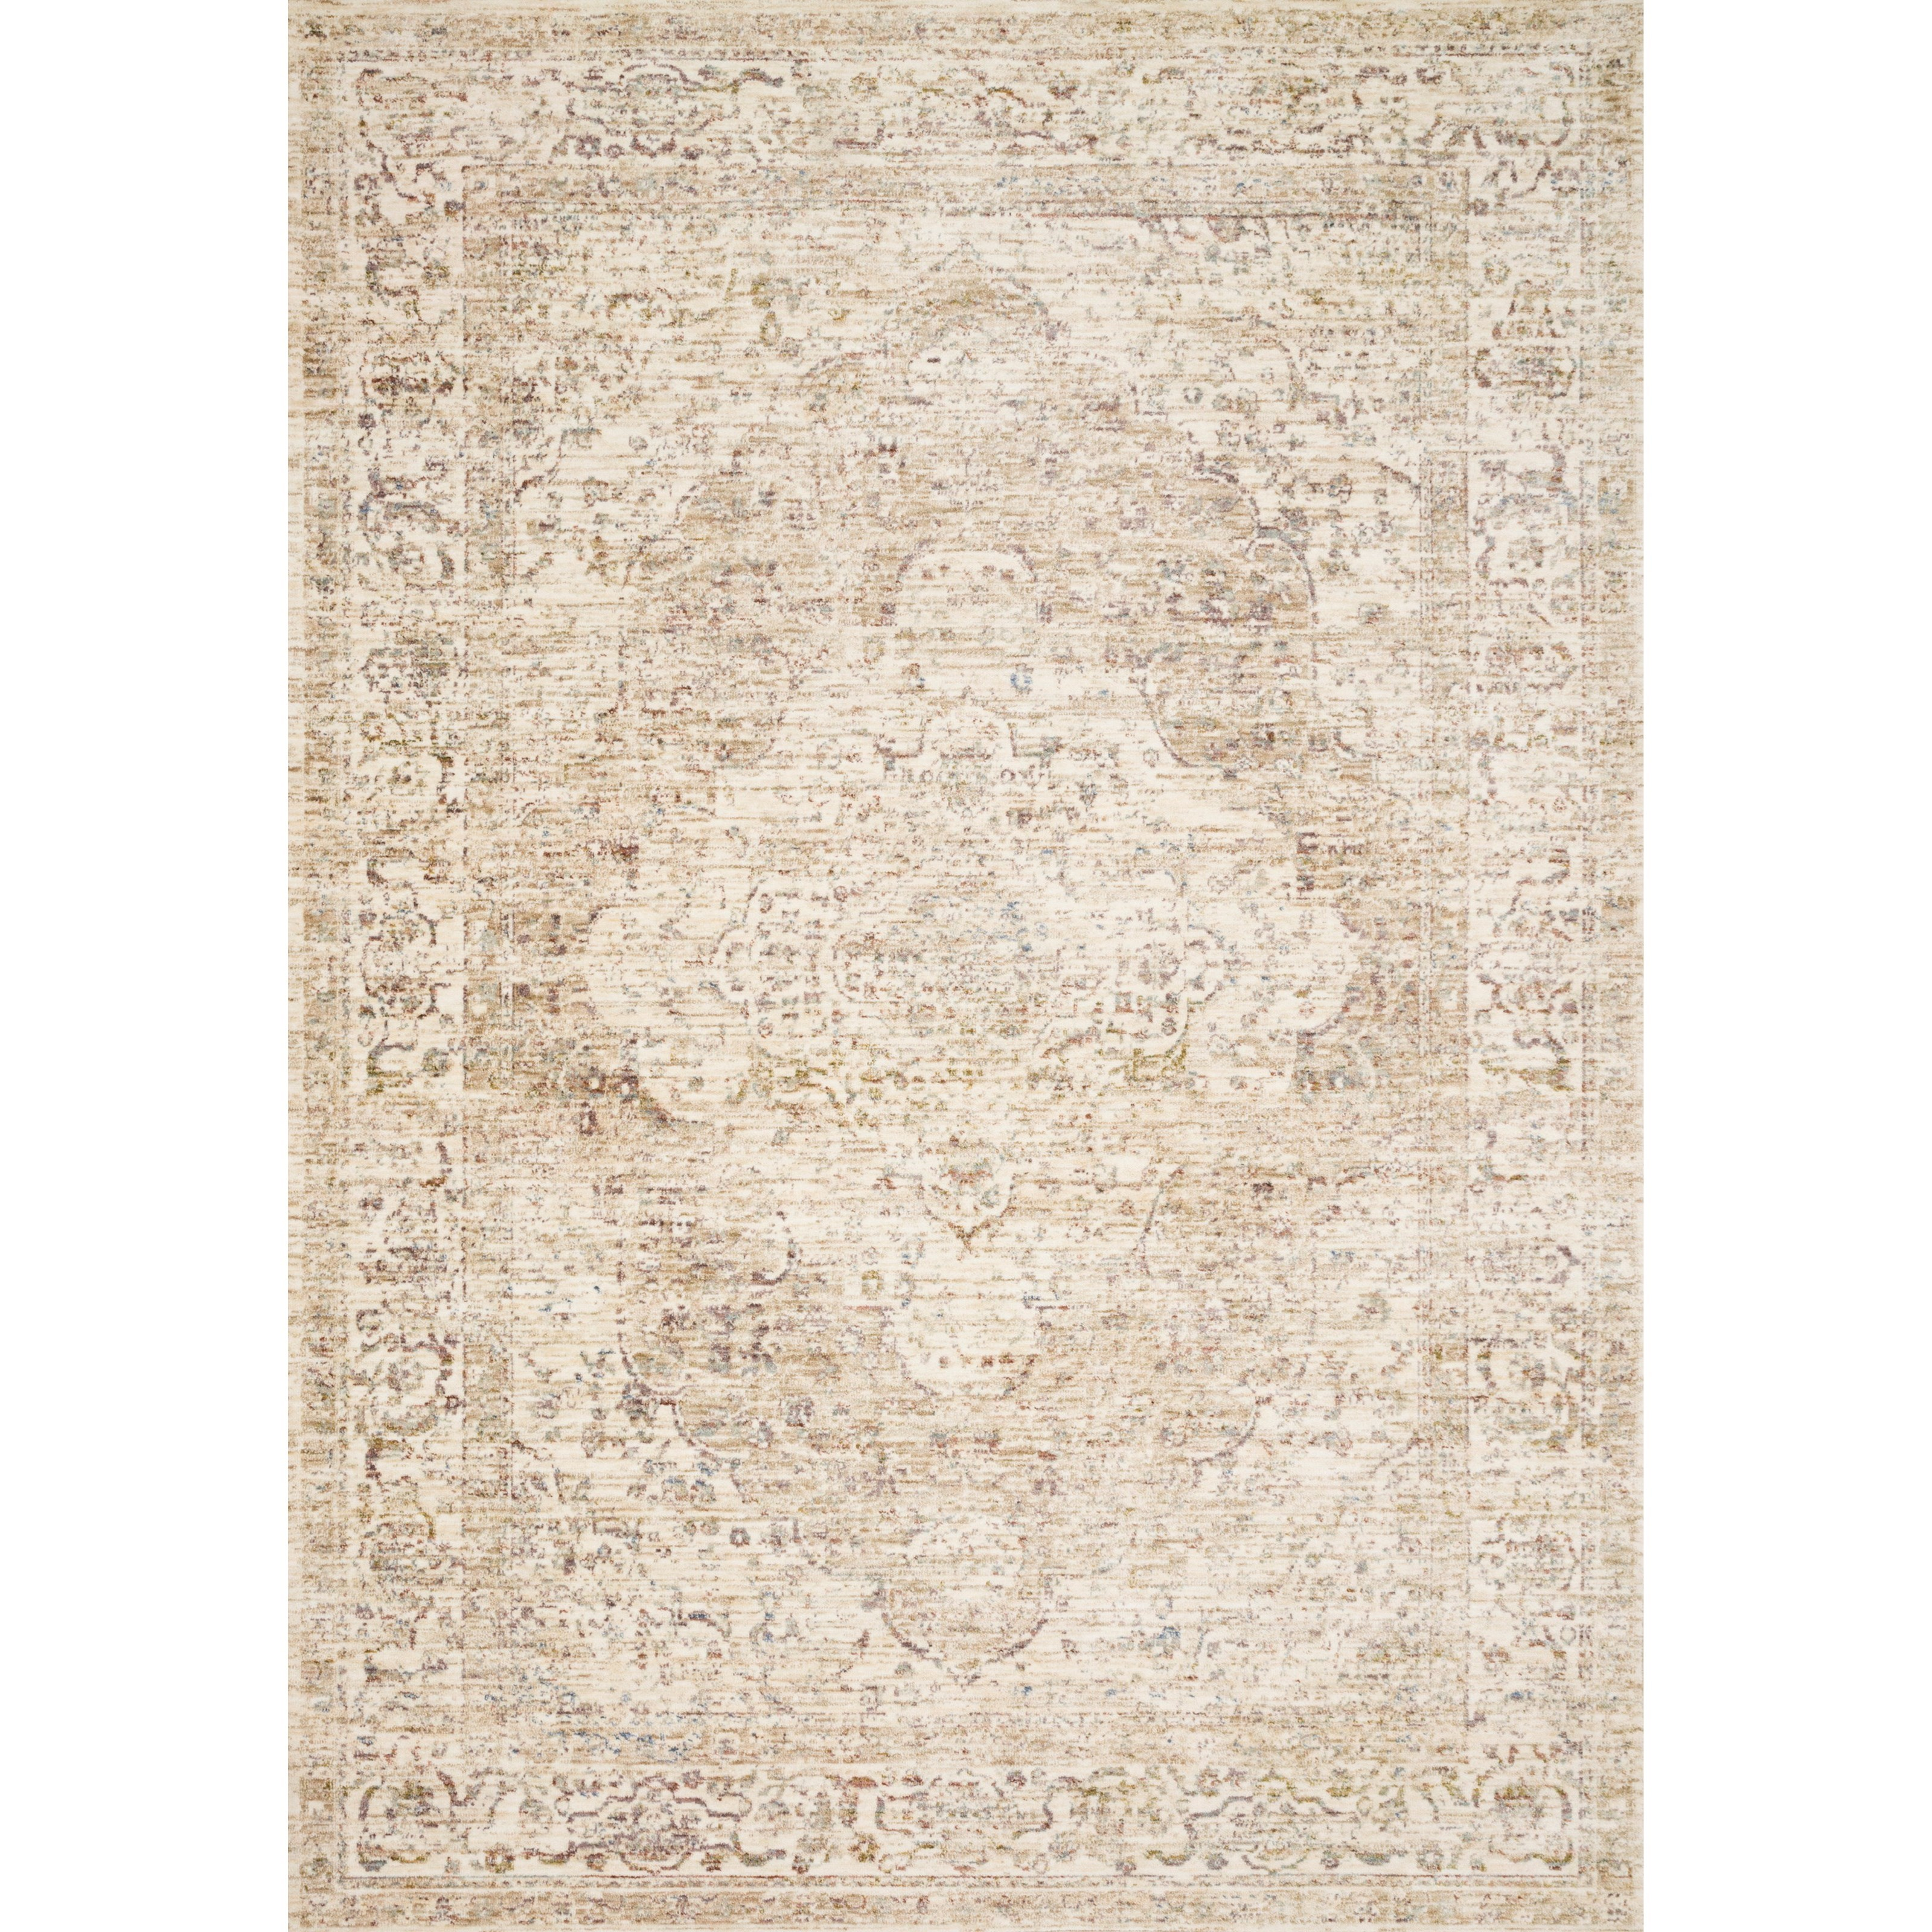 """Revere 1'6"""" x 1'6""""  Ivory / Berry Rug by Loloi Rugs at Virginia Furniture Market"""